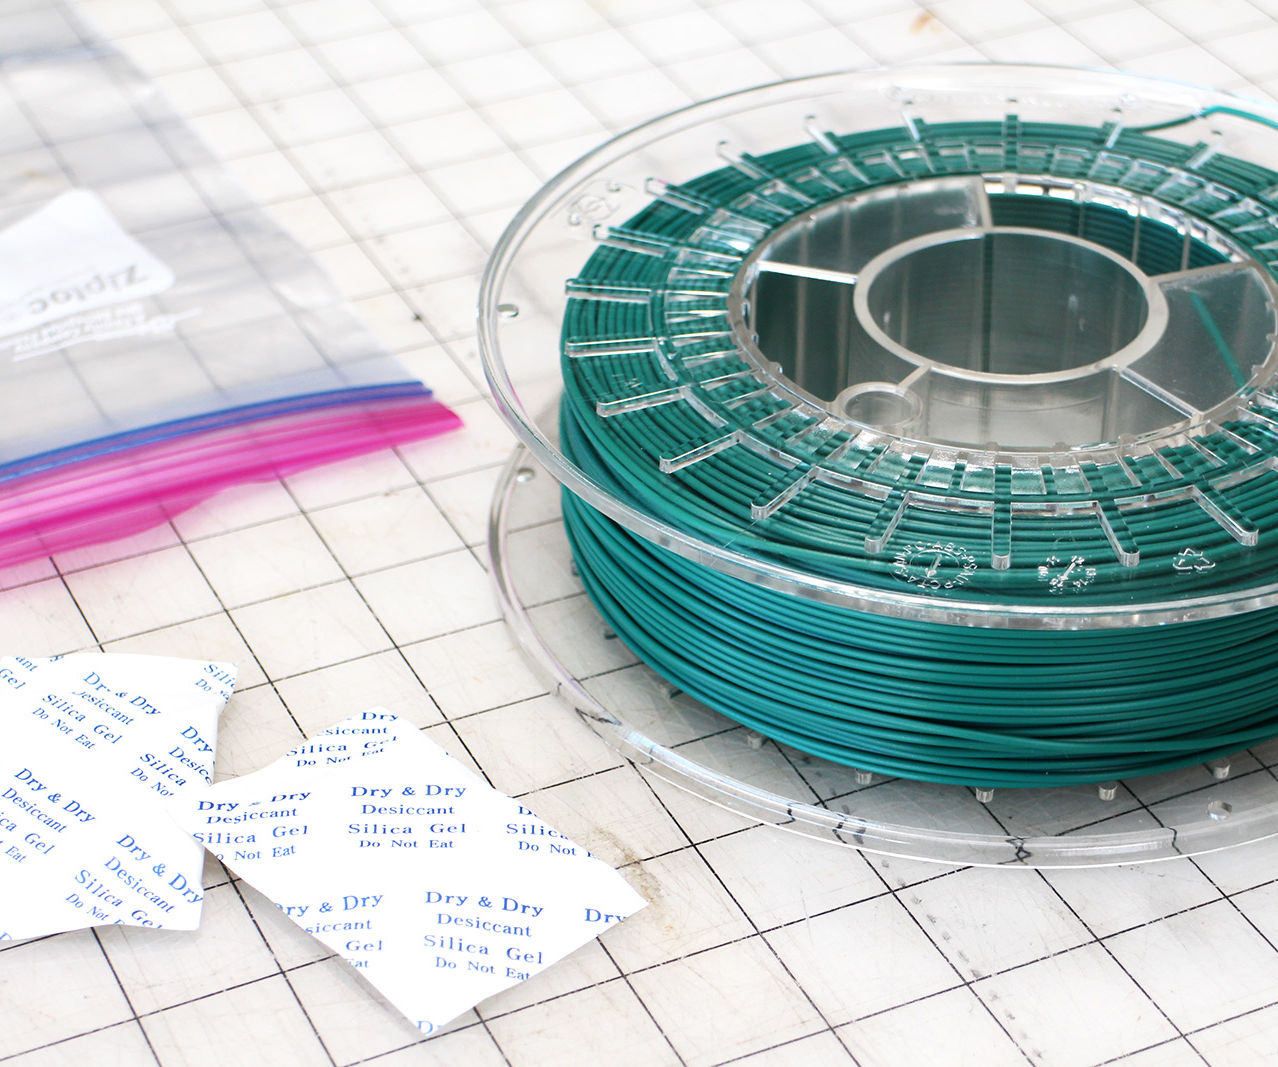 How to Store 3D Printing Filament